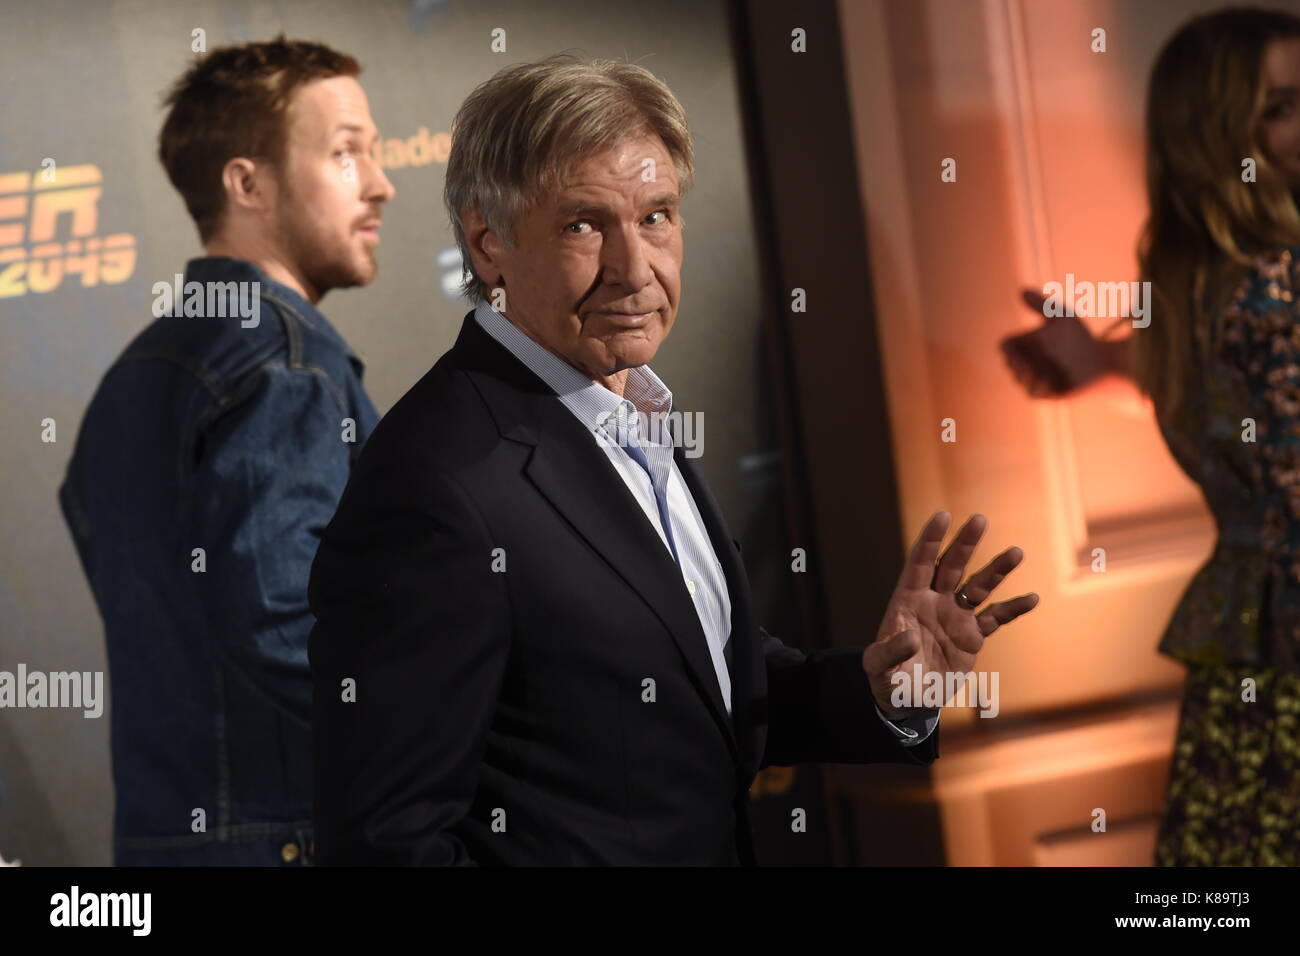 Madrid, Spain. 19th Sep, 2017. Actor Harrison Ford attending the photocall for 'Blade Runner 2049' on Tuesday - Stock Image